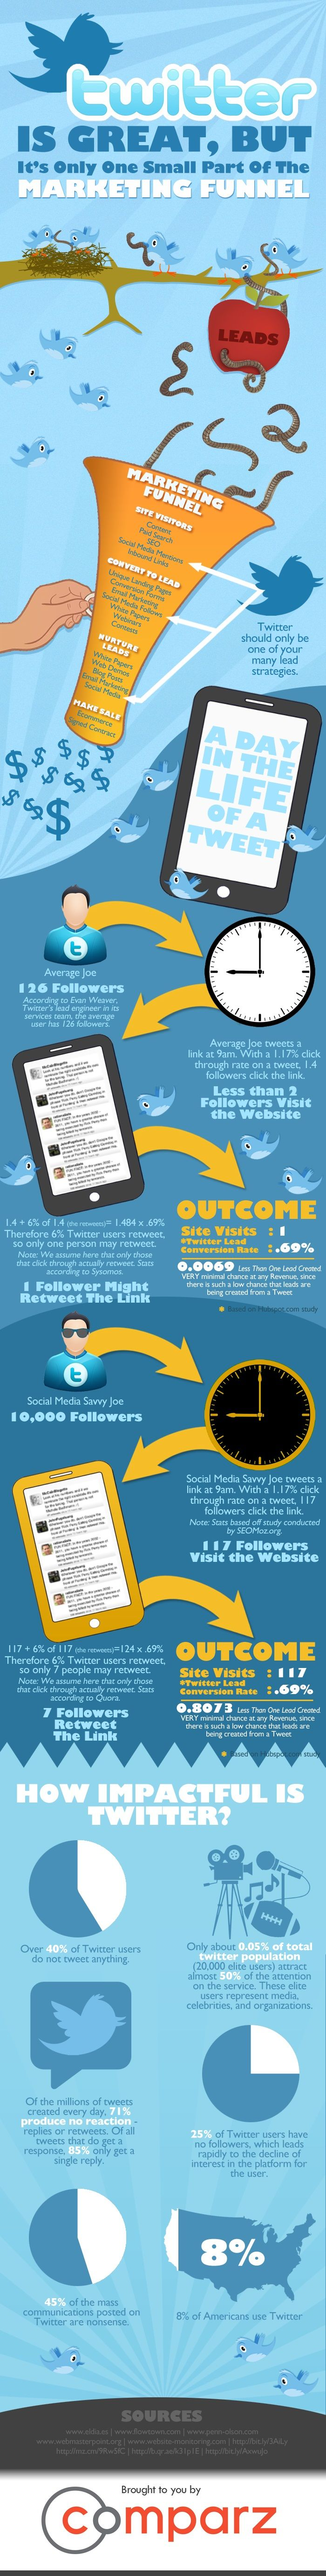 Twitter Is Just One Piece Of The Online Marketing